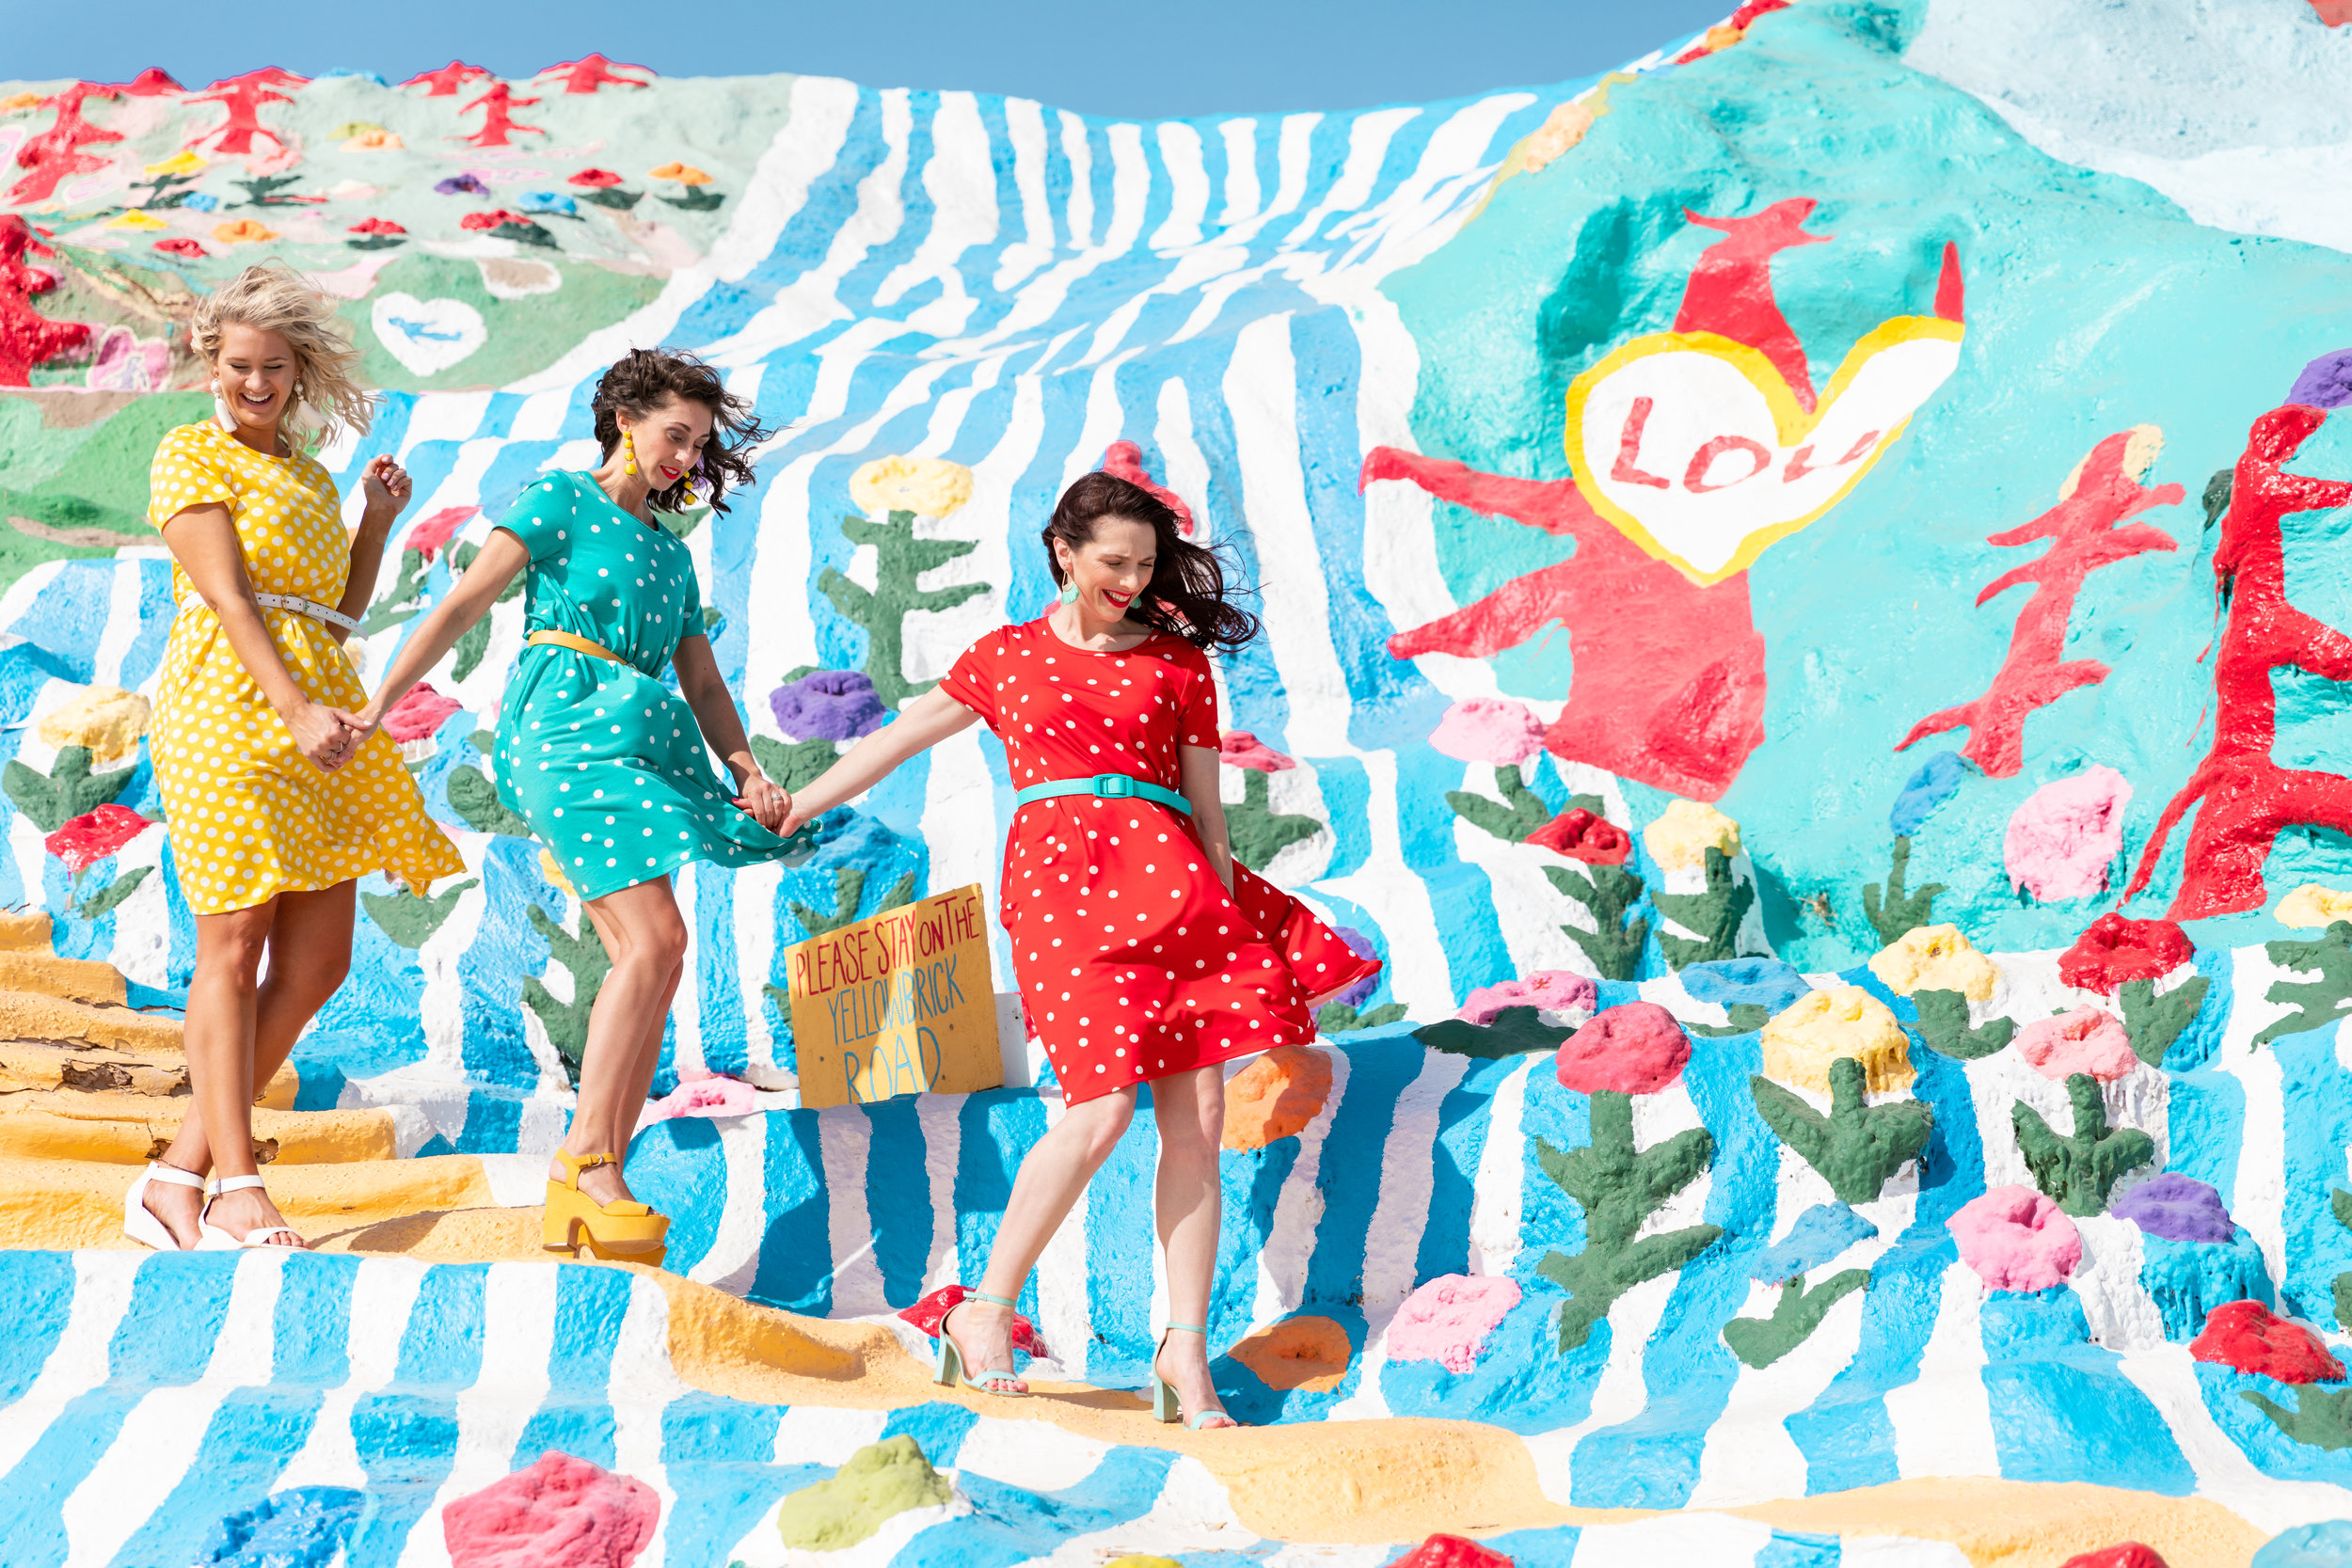 Behind the Scenes with the LuLaRoe Content Creation T.E.A.M. - Creating Magic All Day, Every Day!